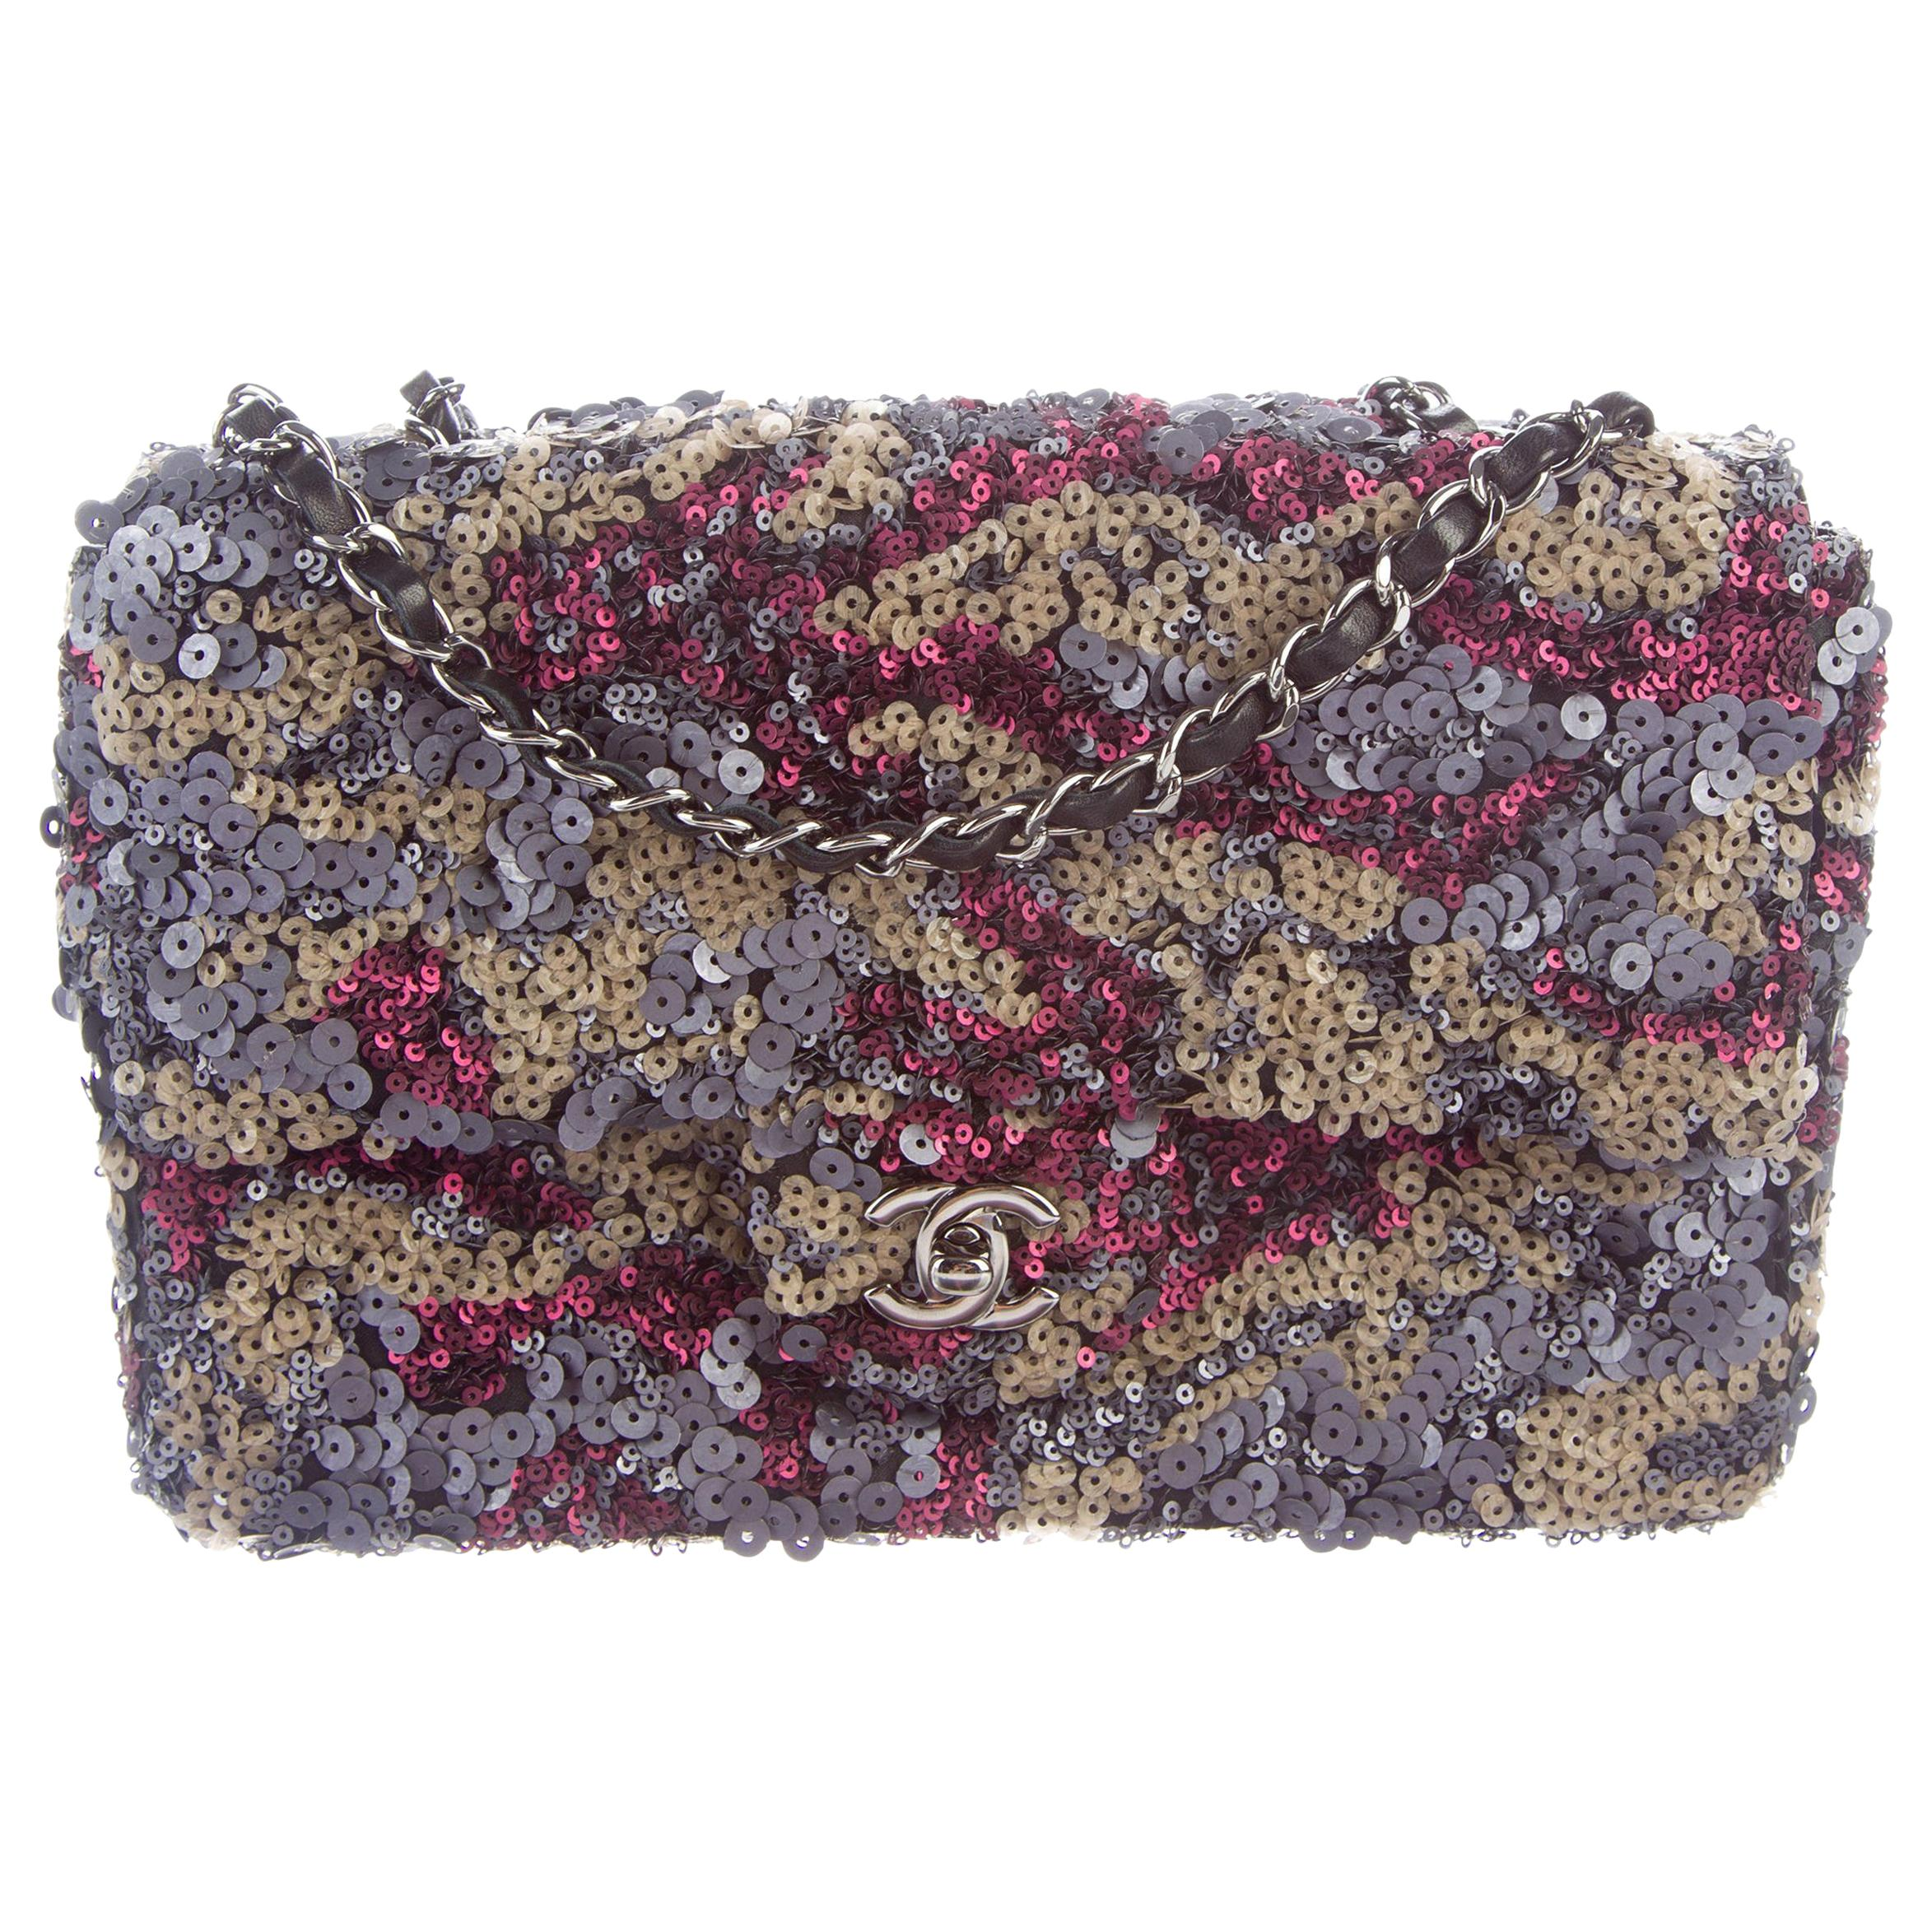 Chanel Purple Multi Color Sequin Black Leather Medium Evening Flap Shoulder Bag